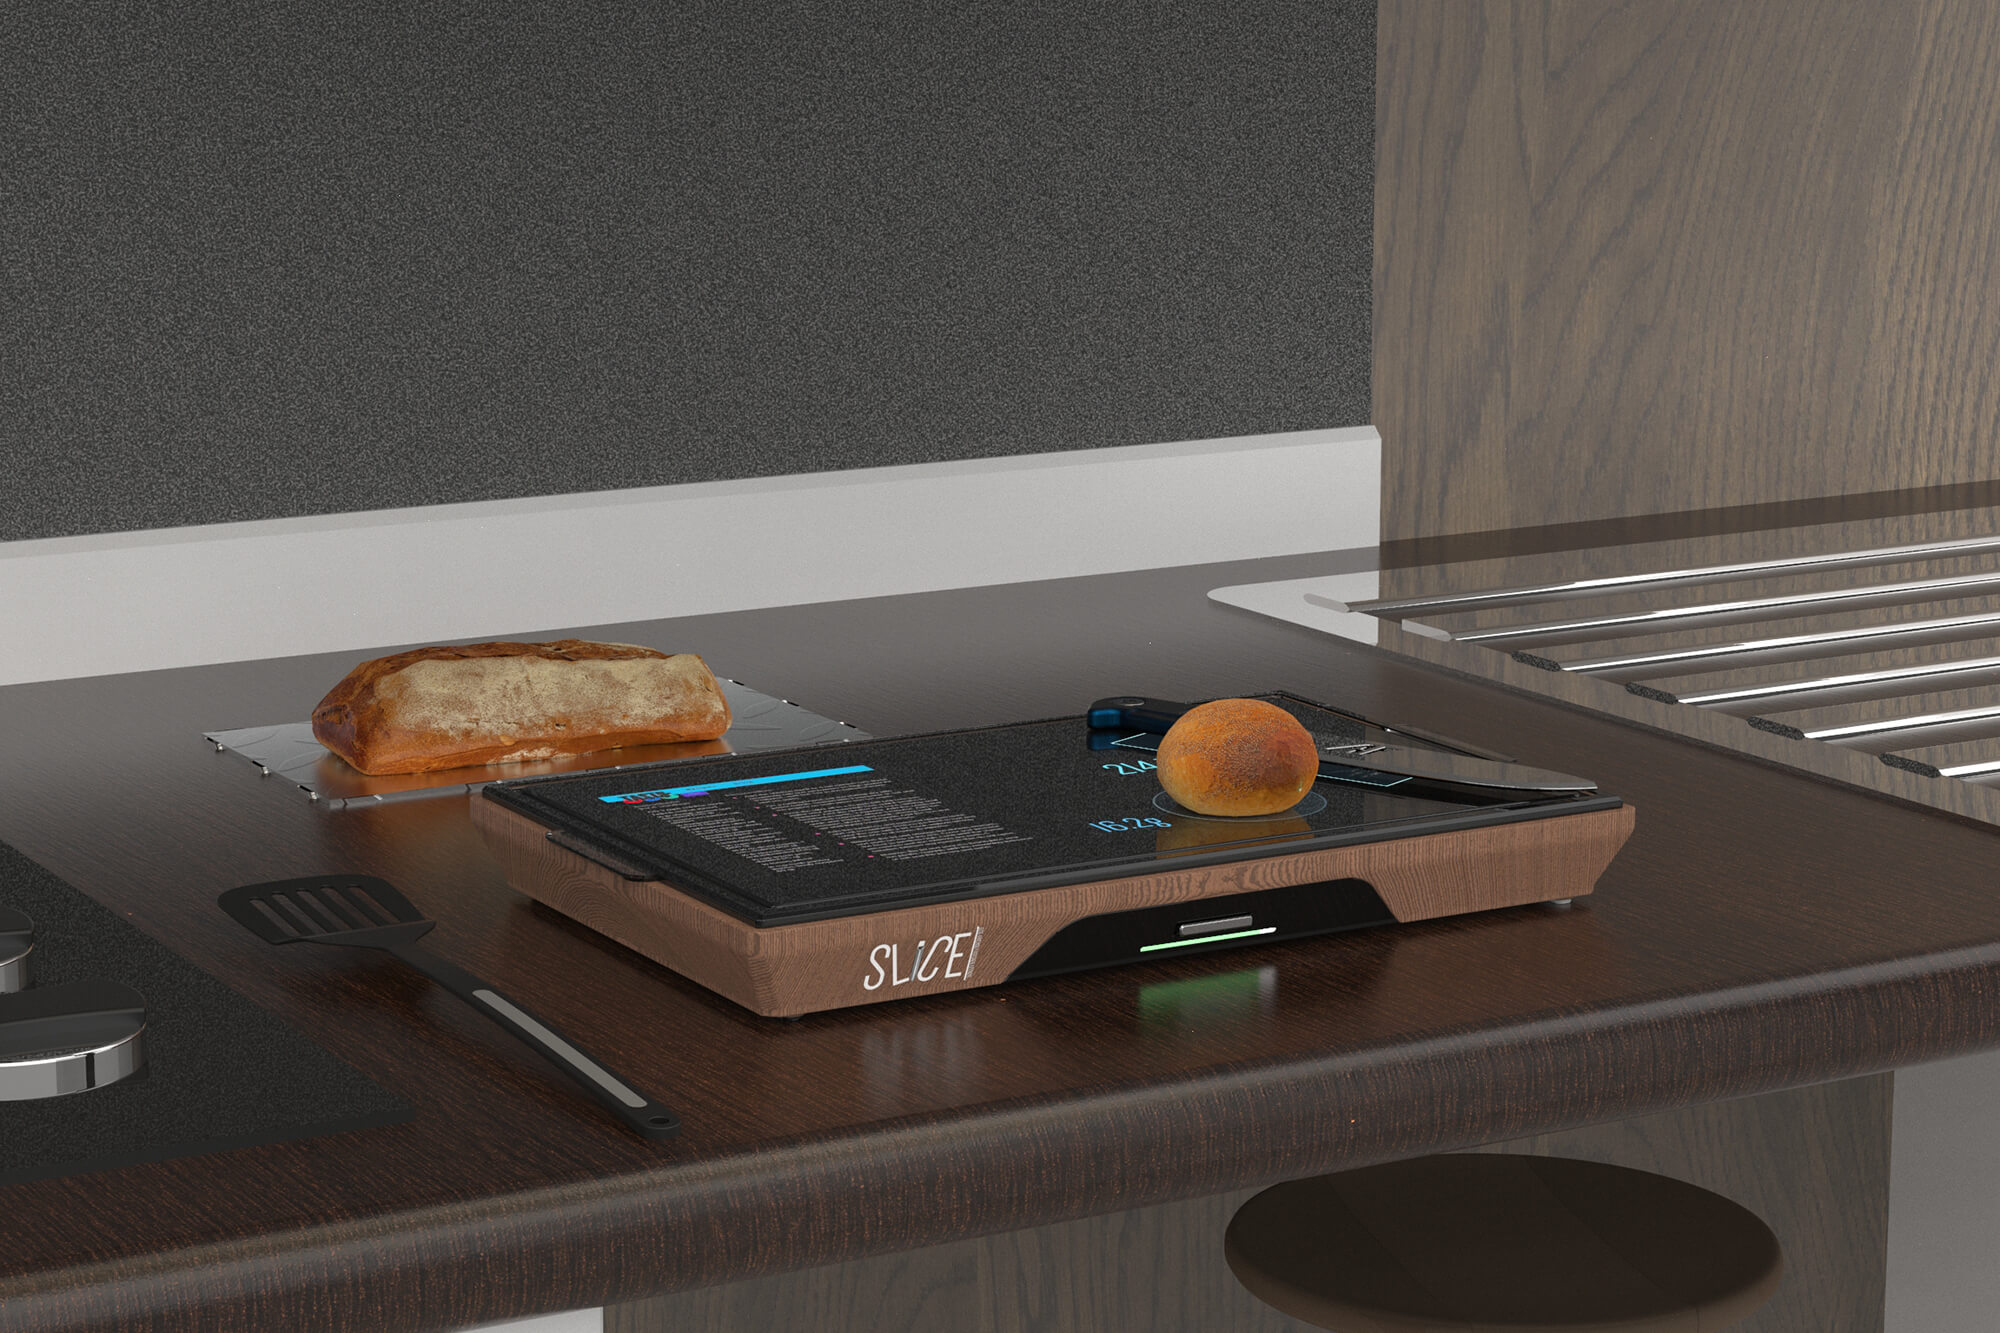 Digital image of a digital chopping board in use on a kitchen surface